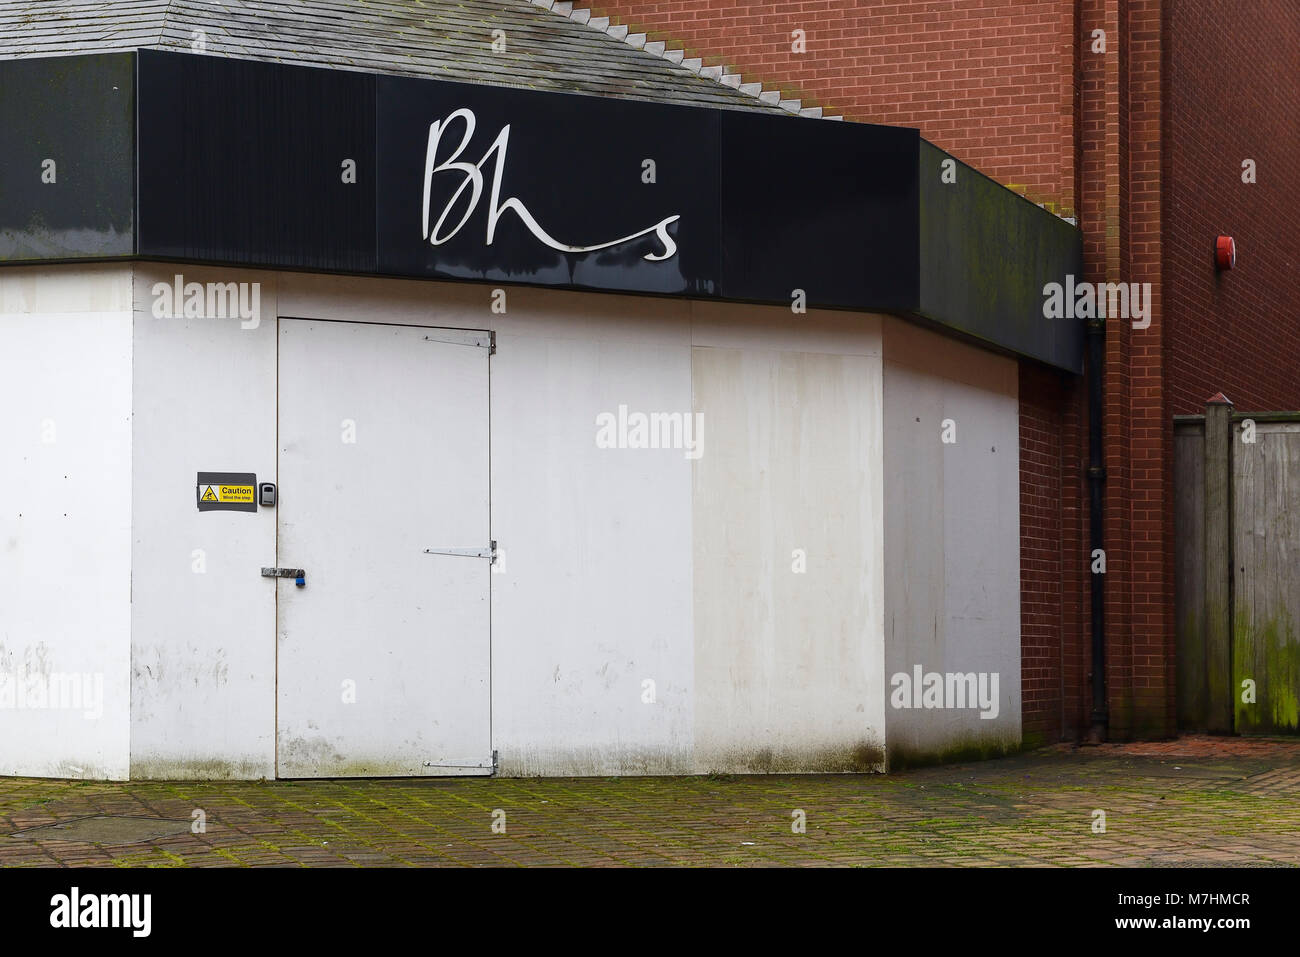 Boarded up BHS shop entrance in Chester city centre UK - Stock Image